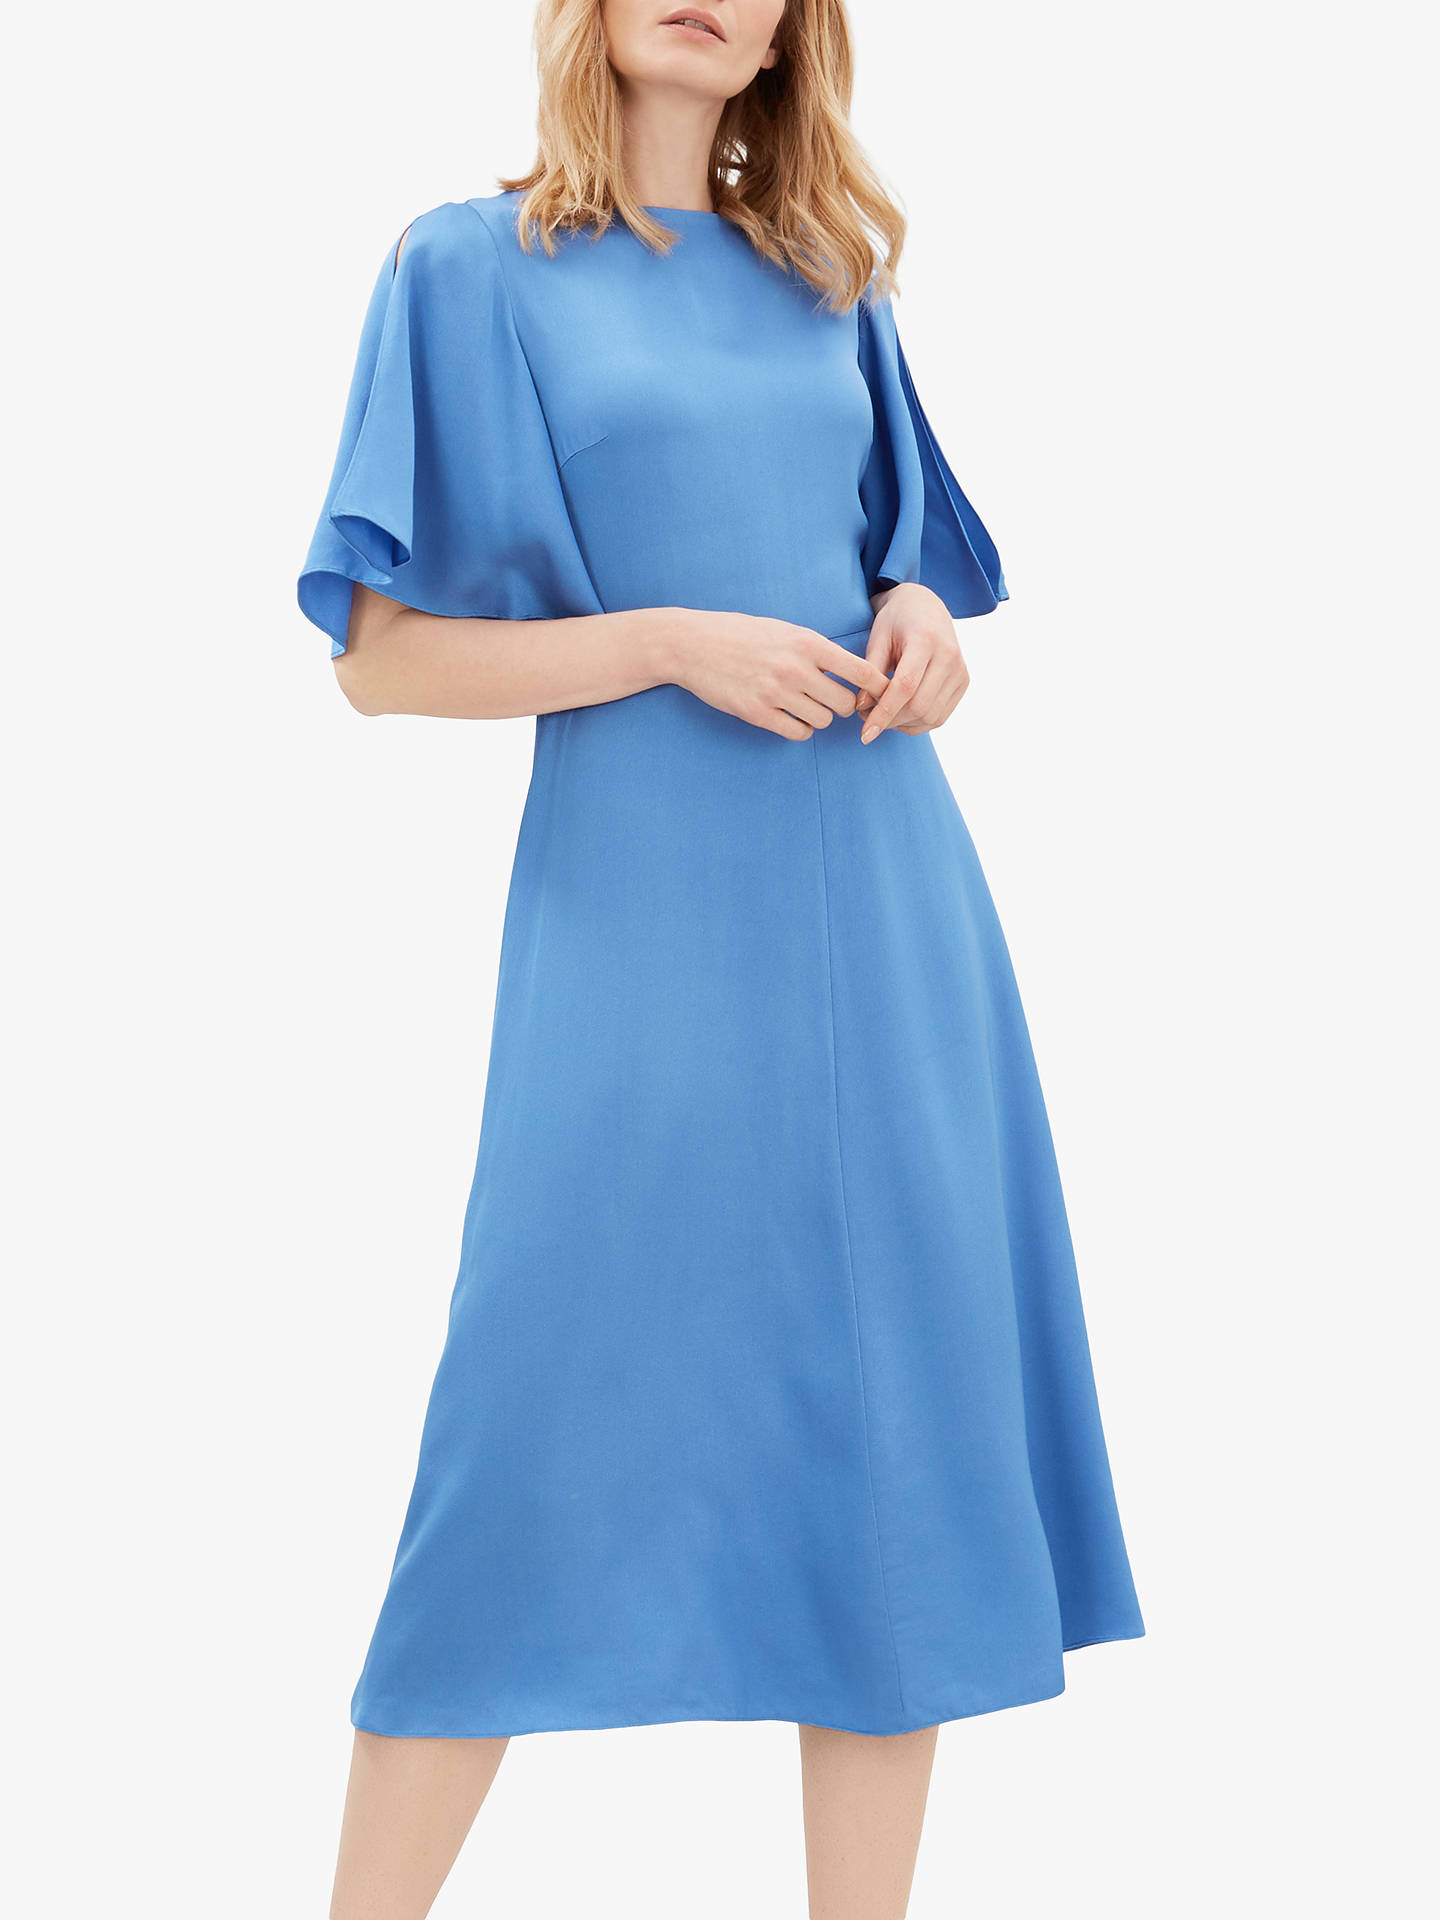 Jaeger Fit And Flare Dress Blue At John Lewis Partners Front is designed to be tied up at the waist. jaeger fit and flare dress blue at